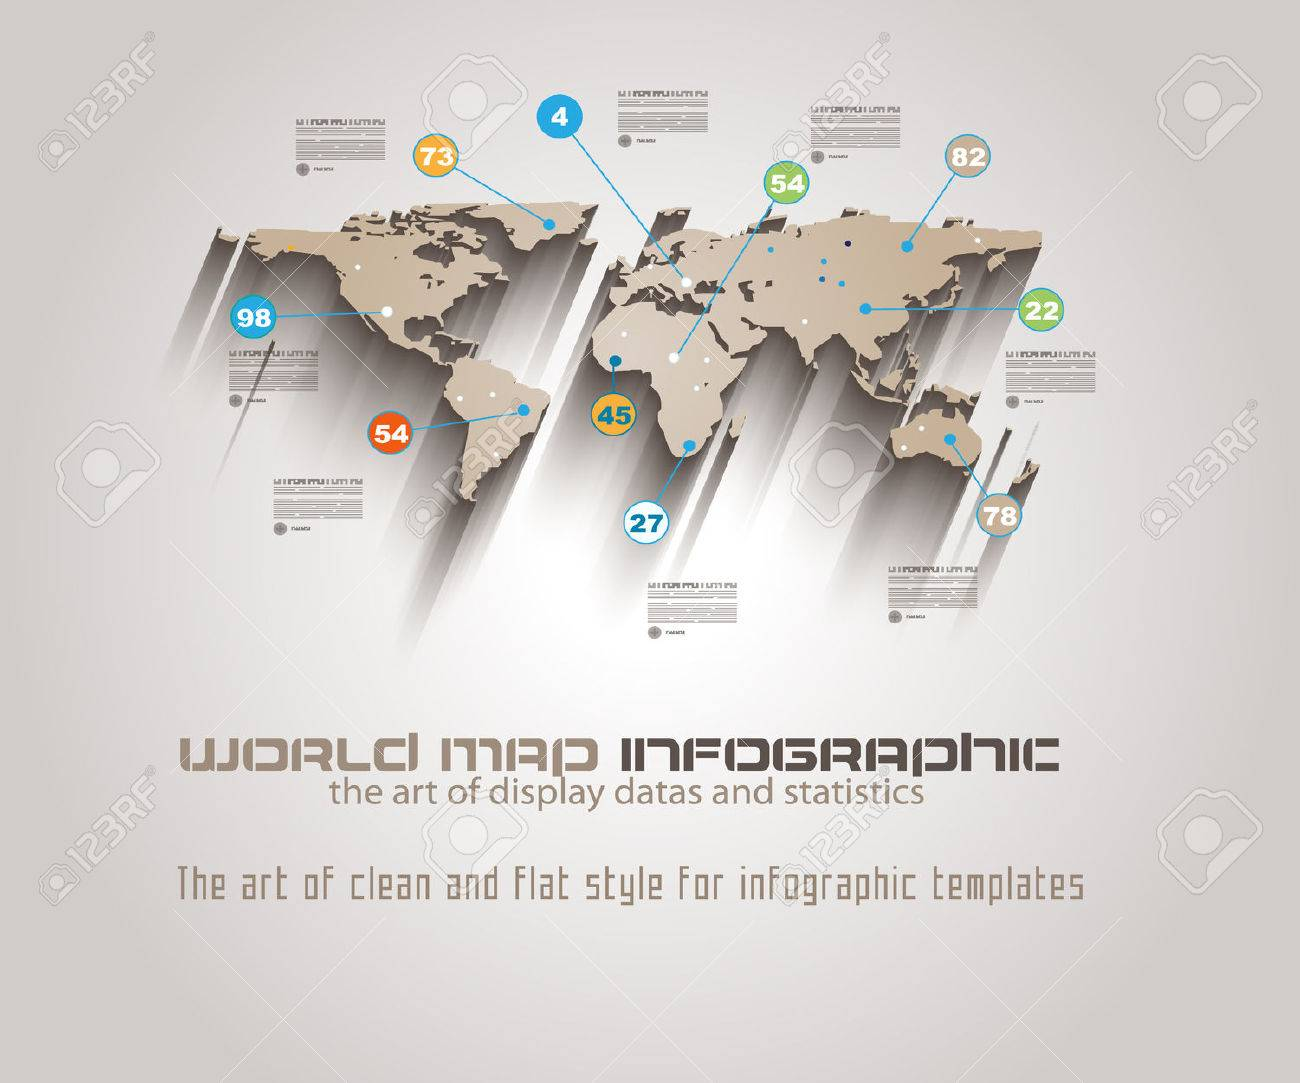 World map infographic template to display your global data royalty vector world map infographic template to display your global data gumiabroncs Gallery